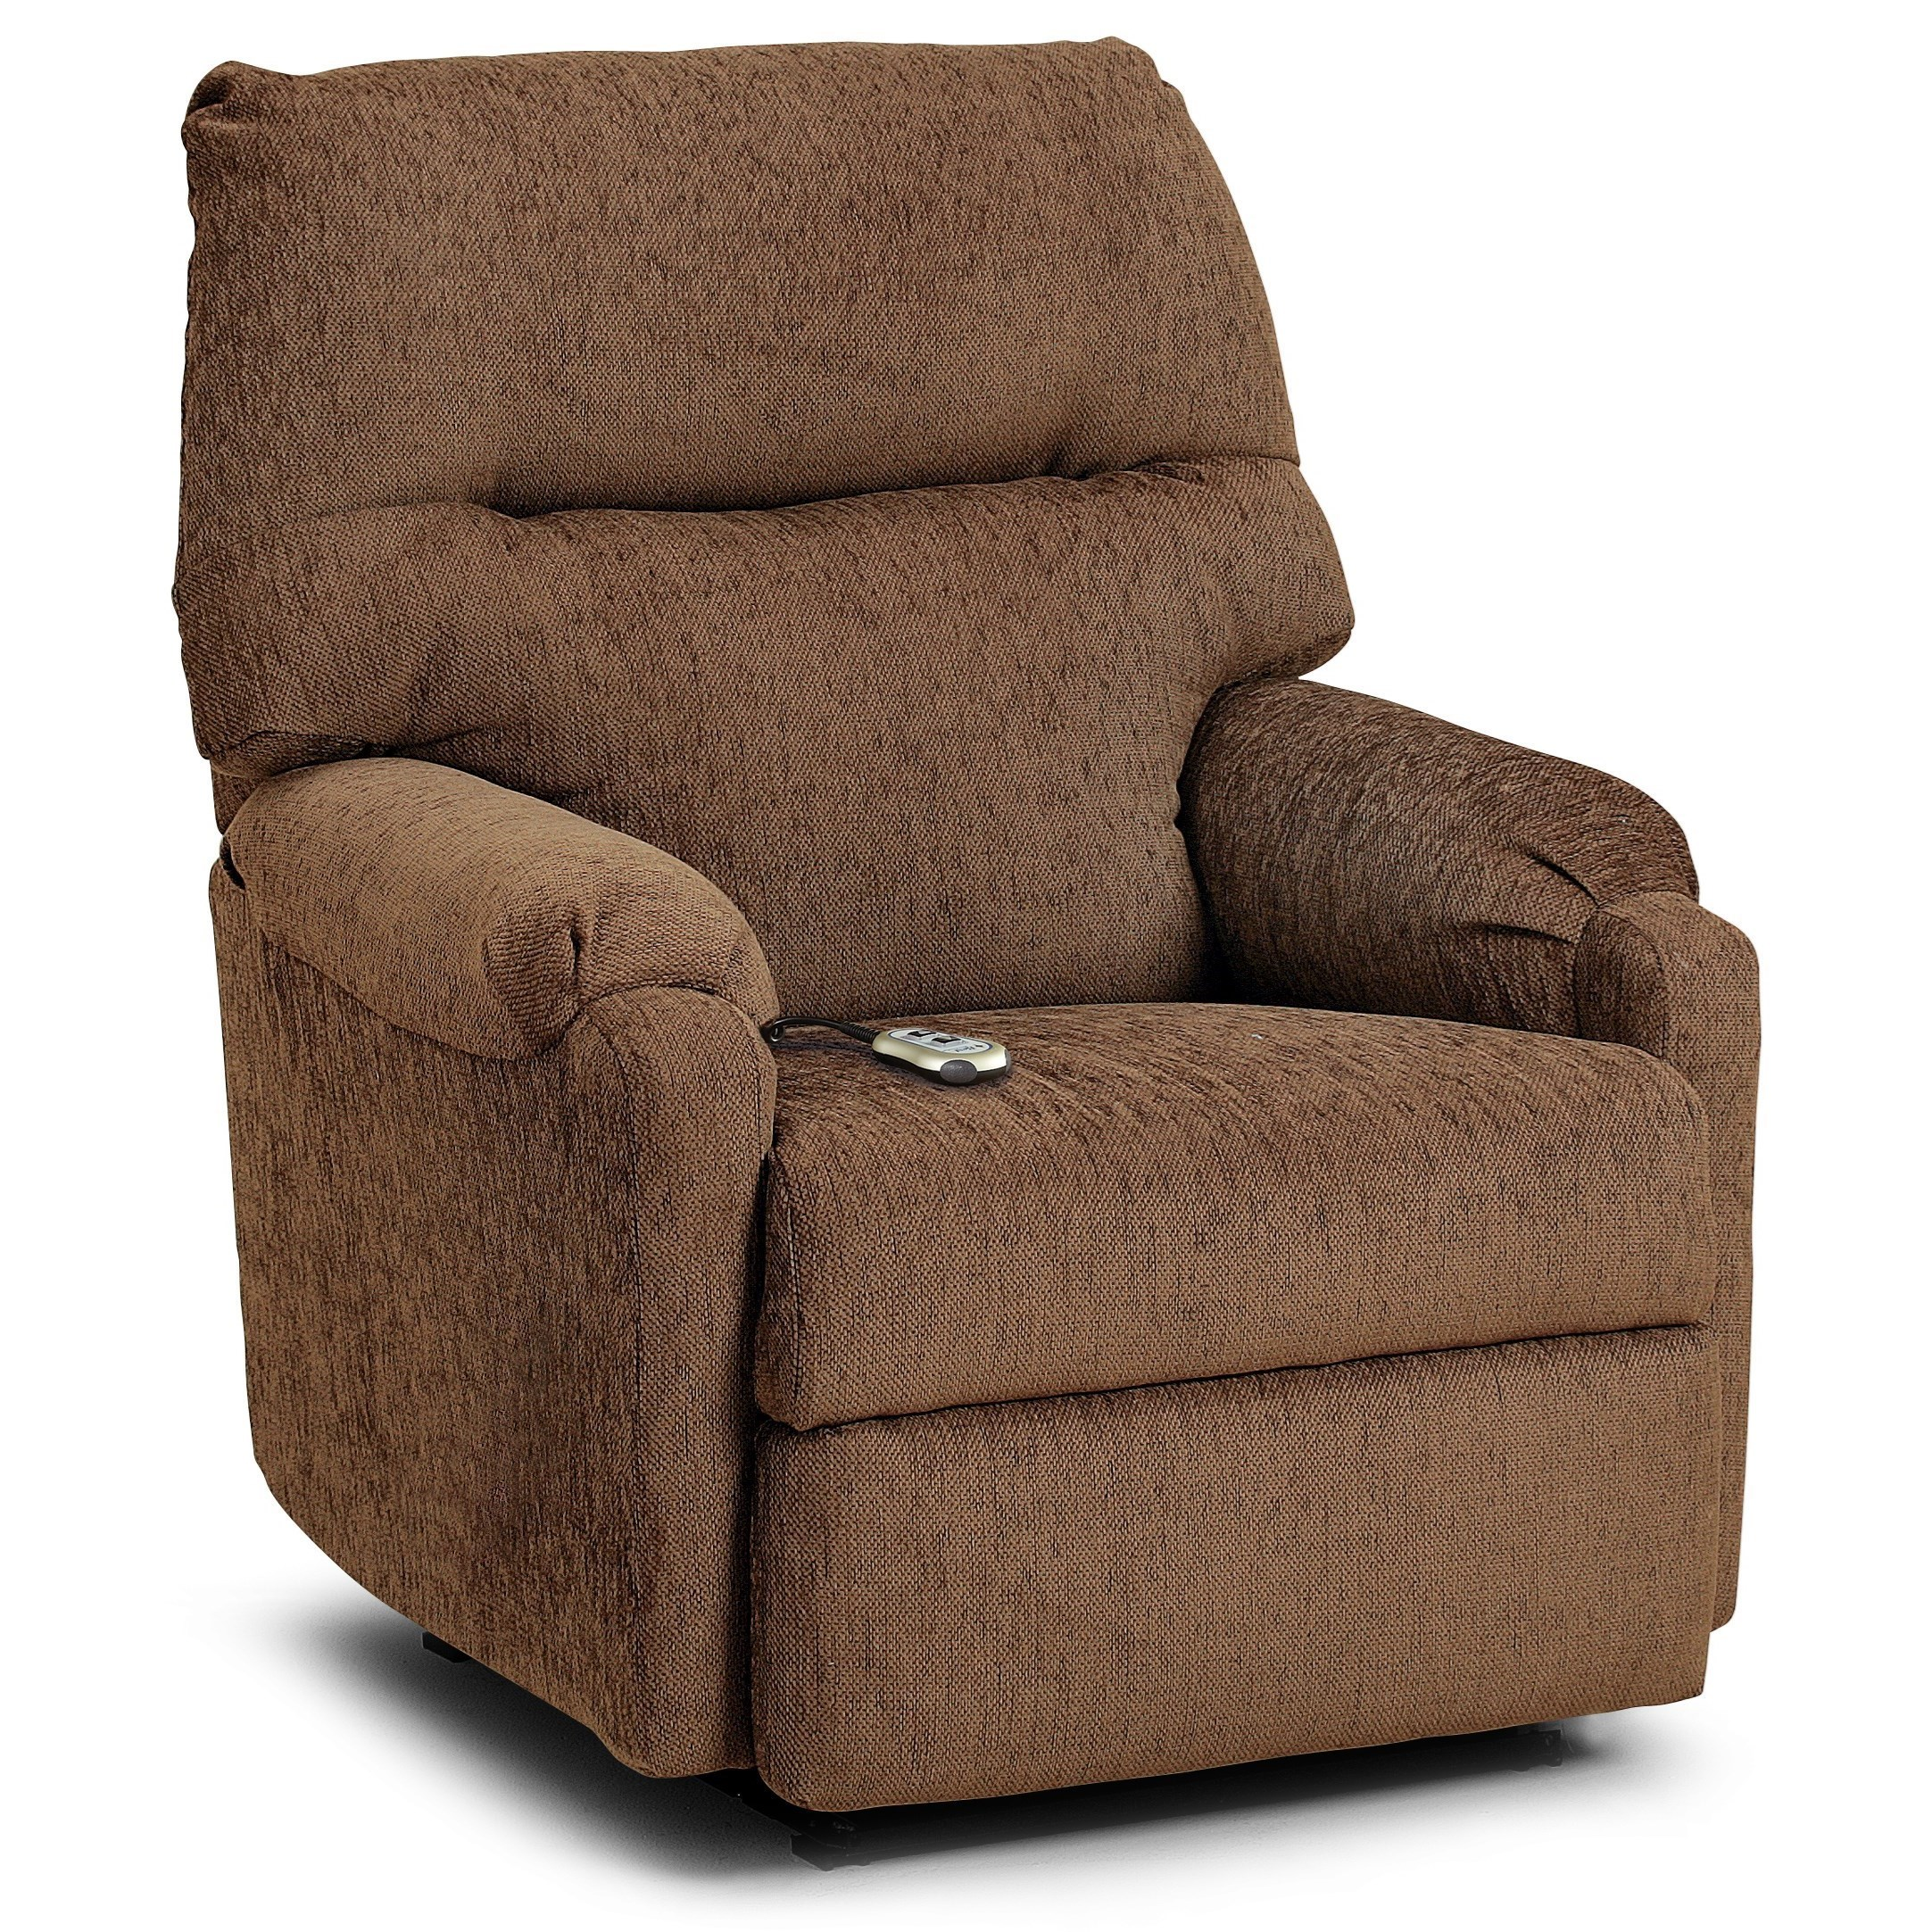 Best Home Furnishings Recliners - Petite JoJo Power Lift Recliner with Remote  sc 1 st  Wayside Furniture & Best Home Furnishings Recliners - Petite JoJo Power Lift Recliner ... islam-shia.org